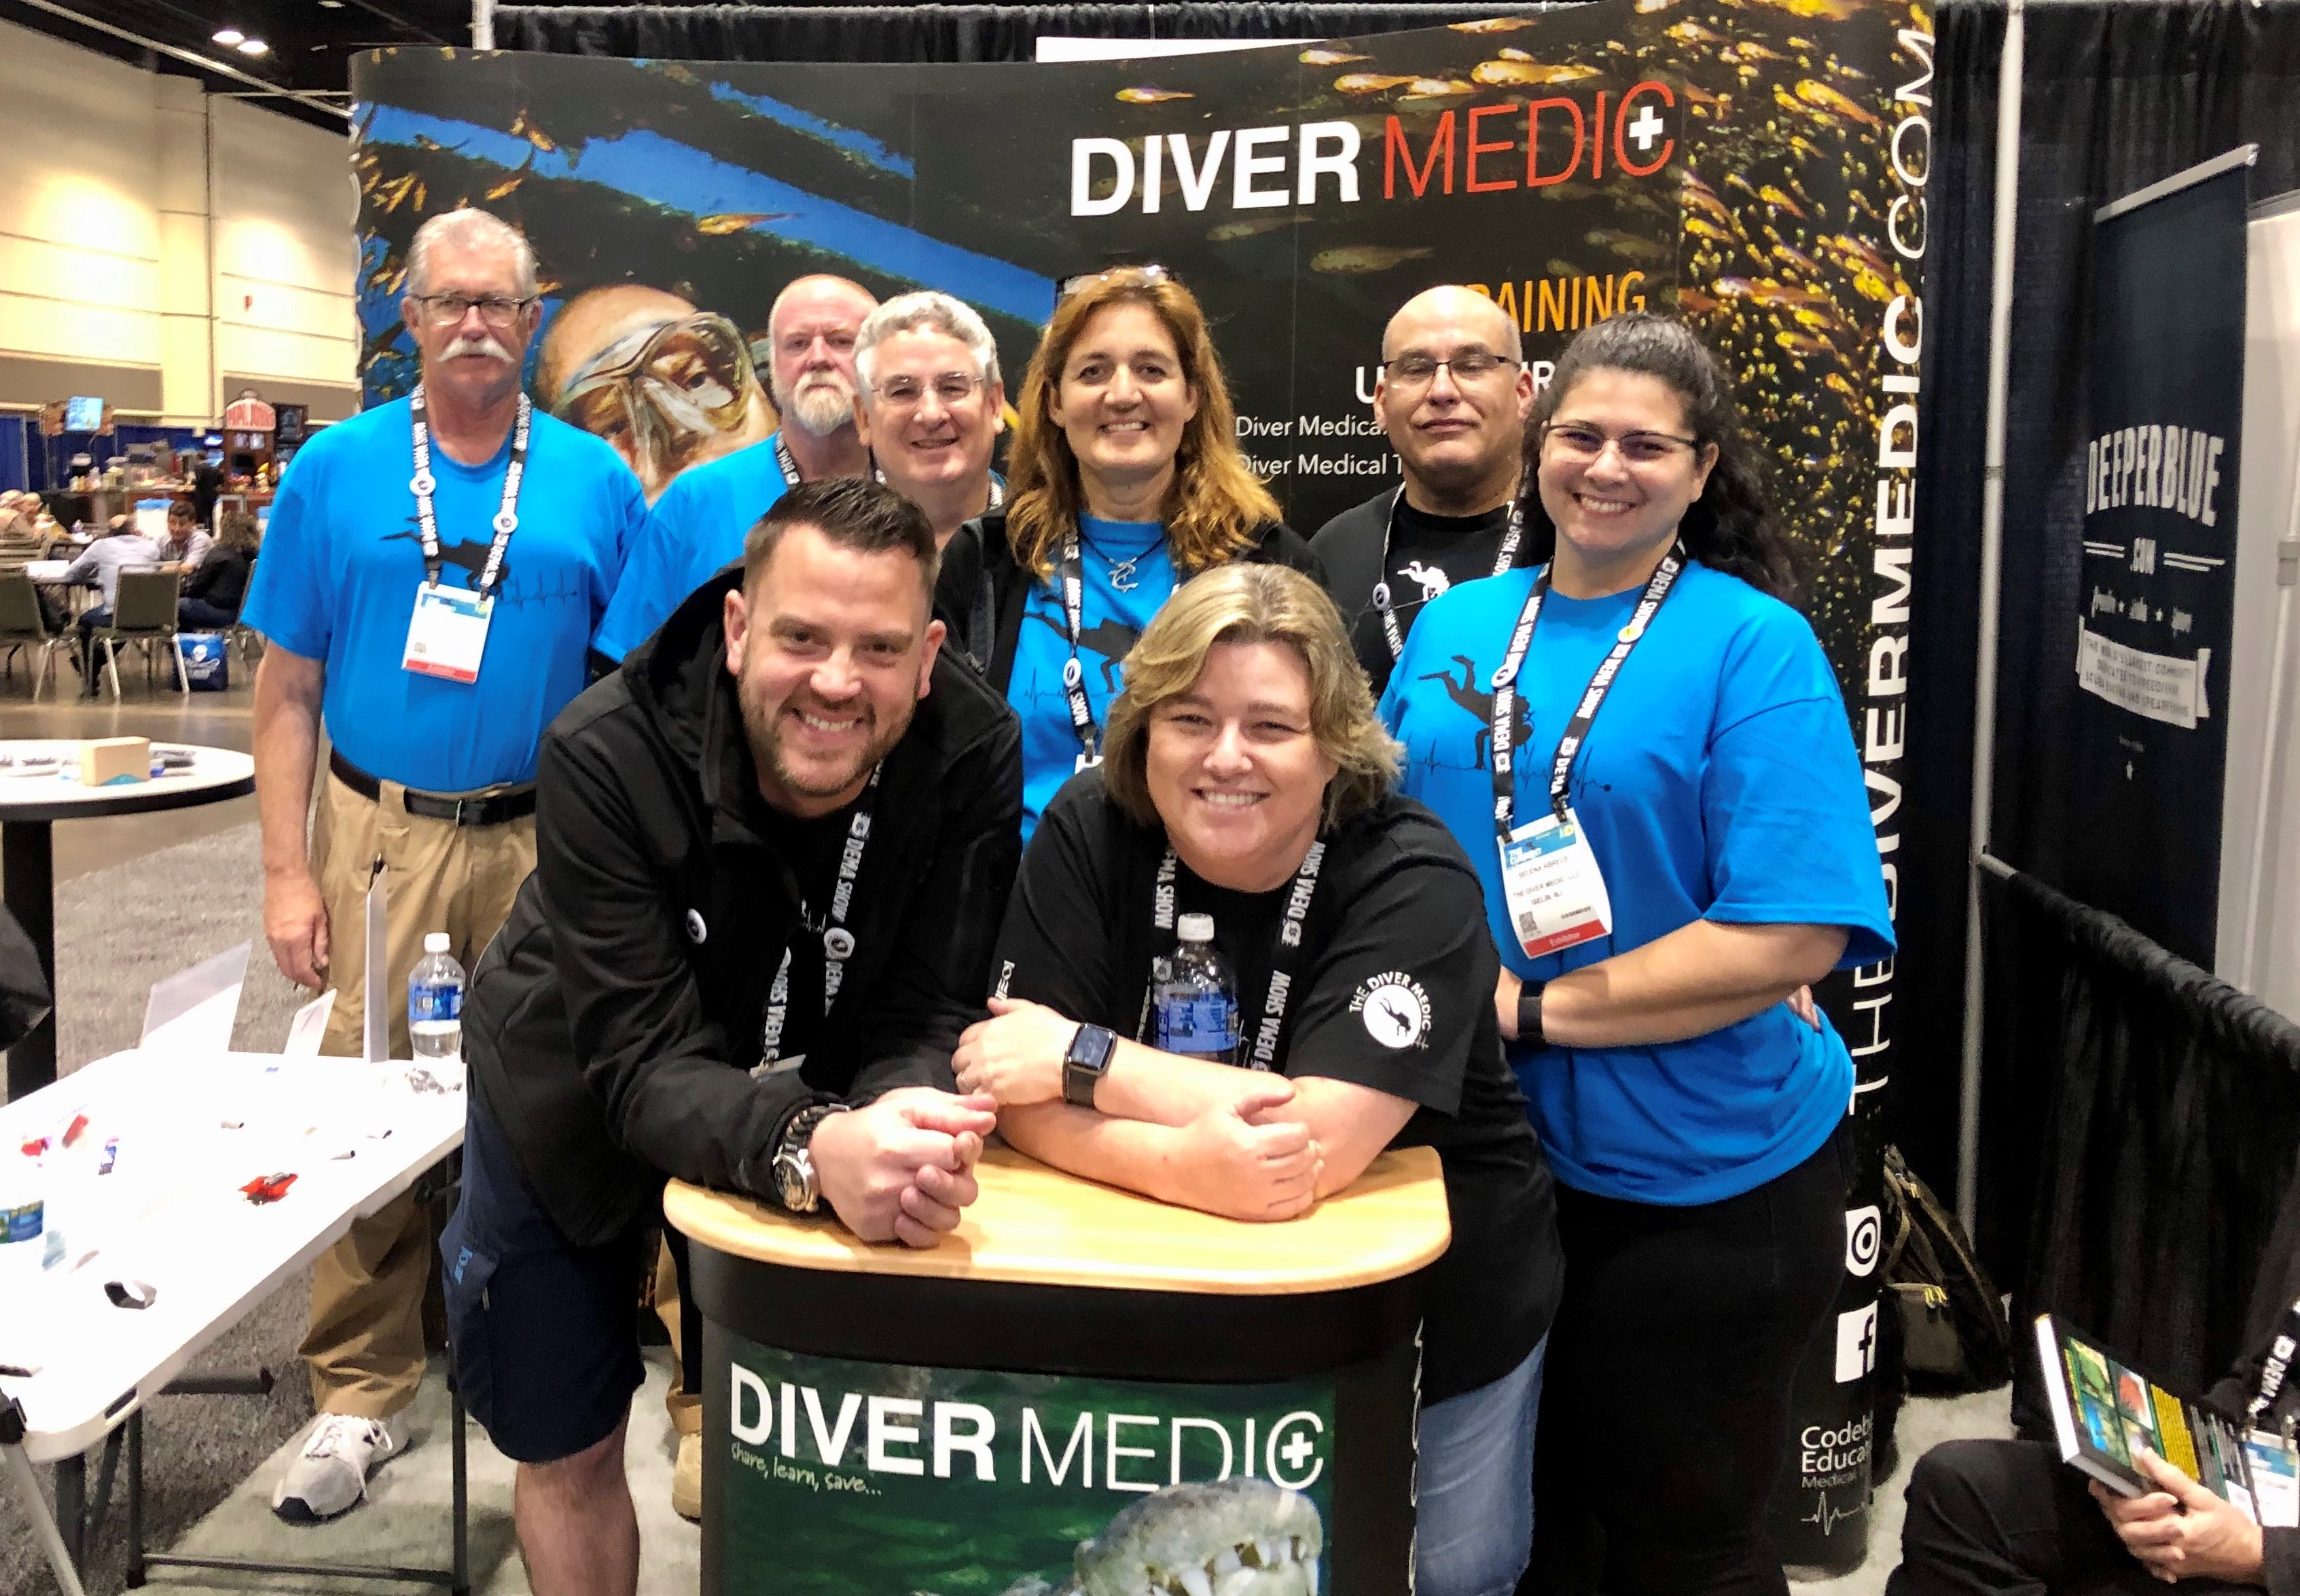 Dema Show 2020.The Diver Medic Showcases Diving Emergency Medical Responder